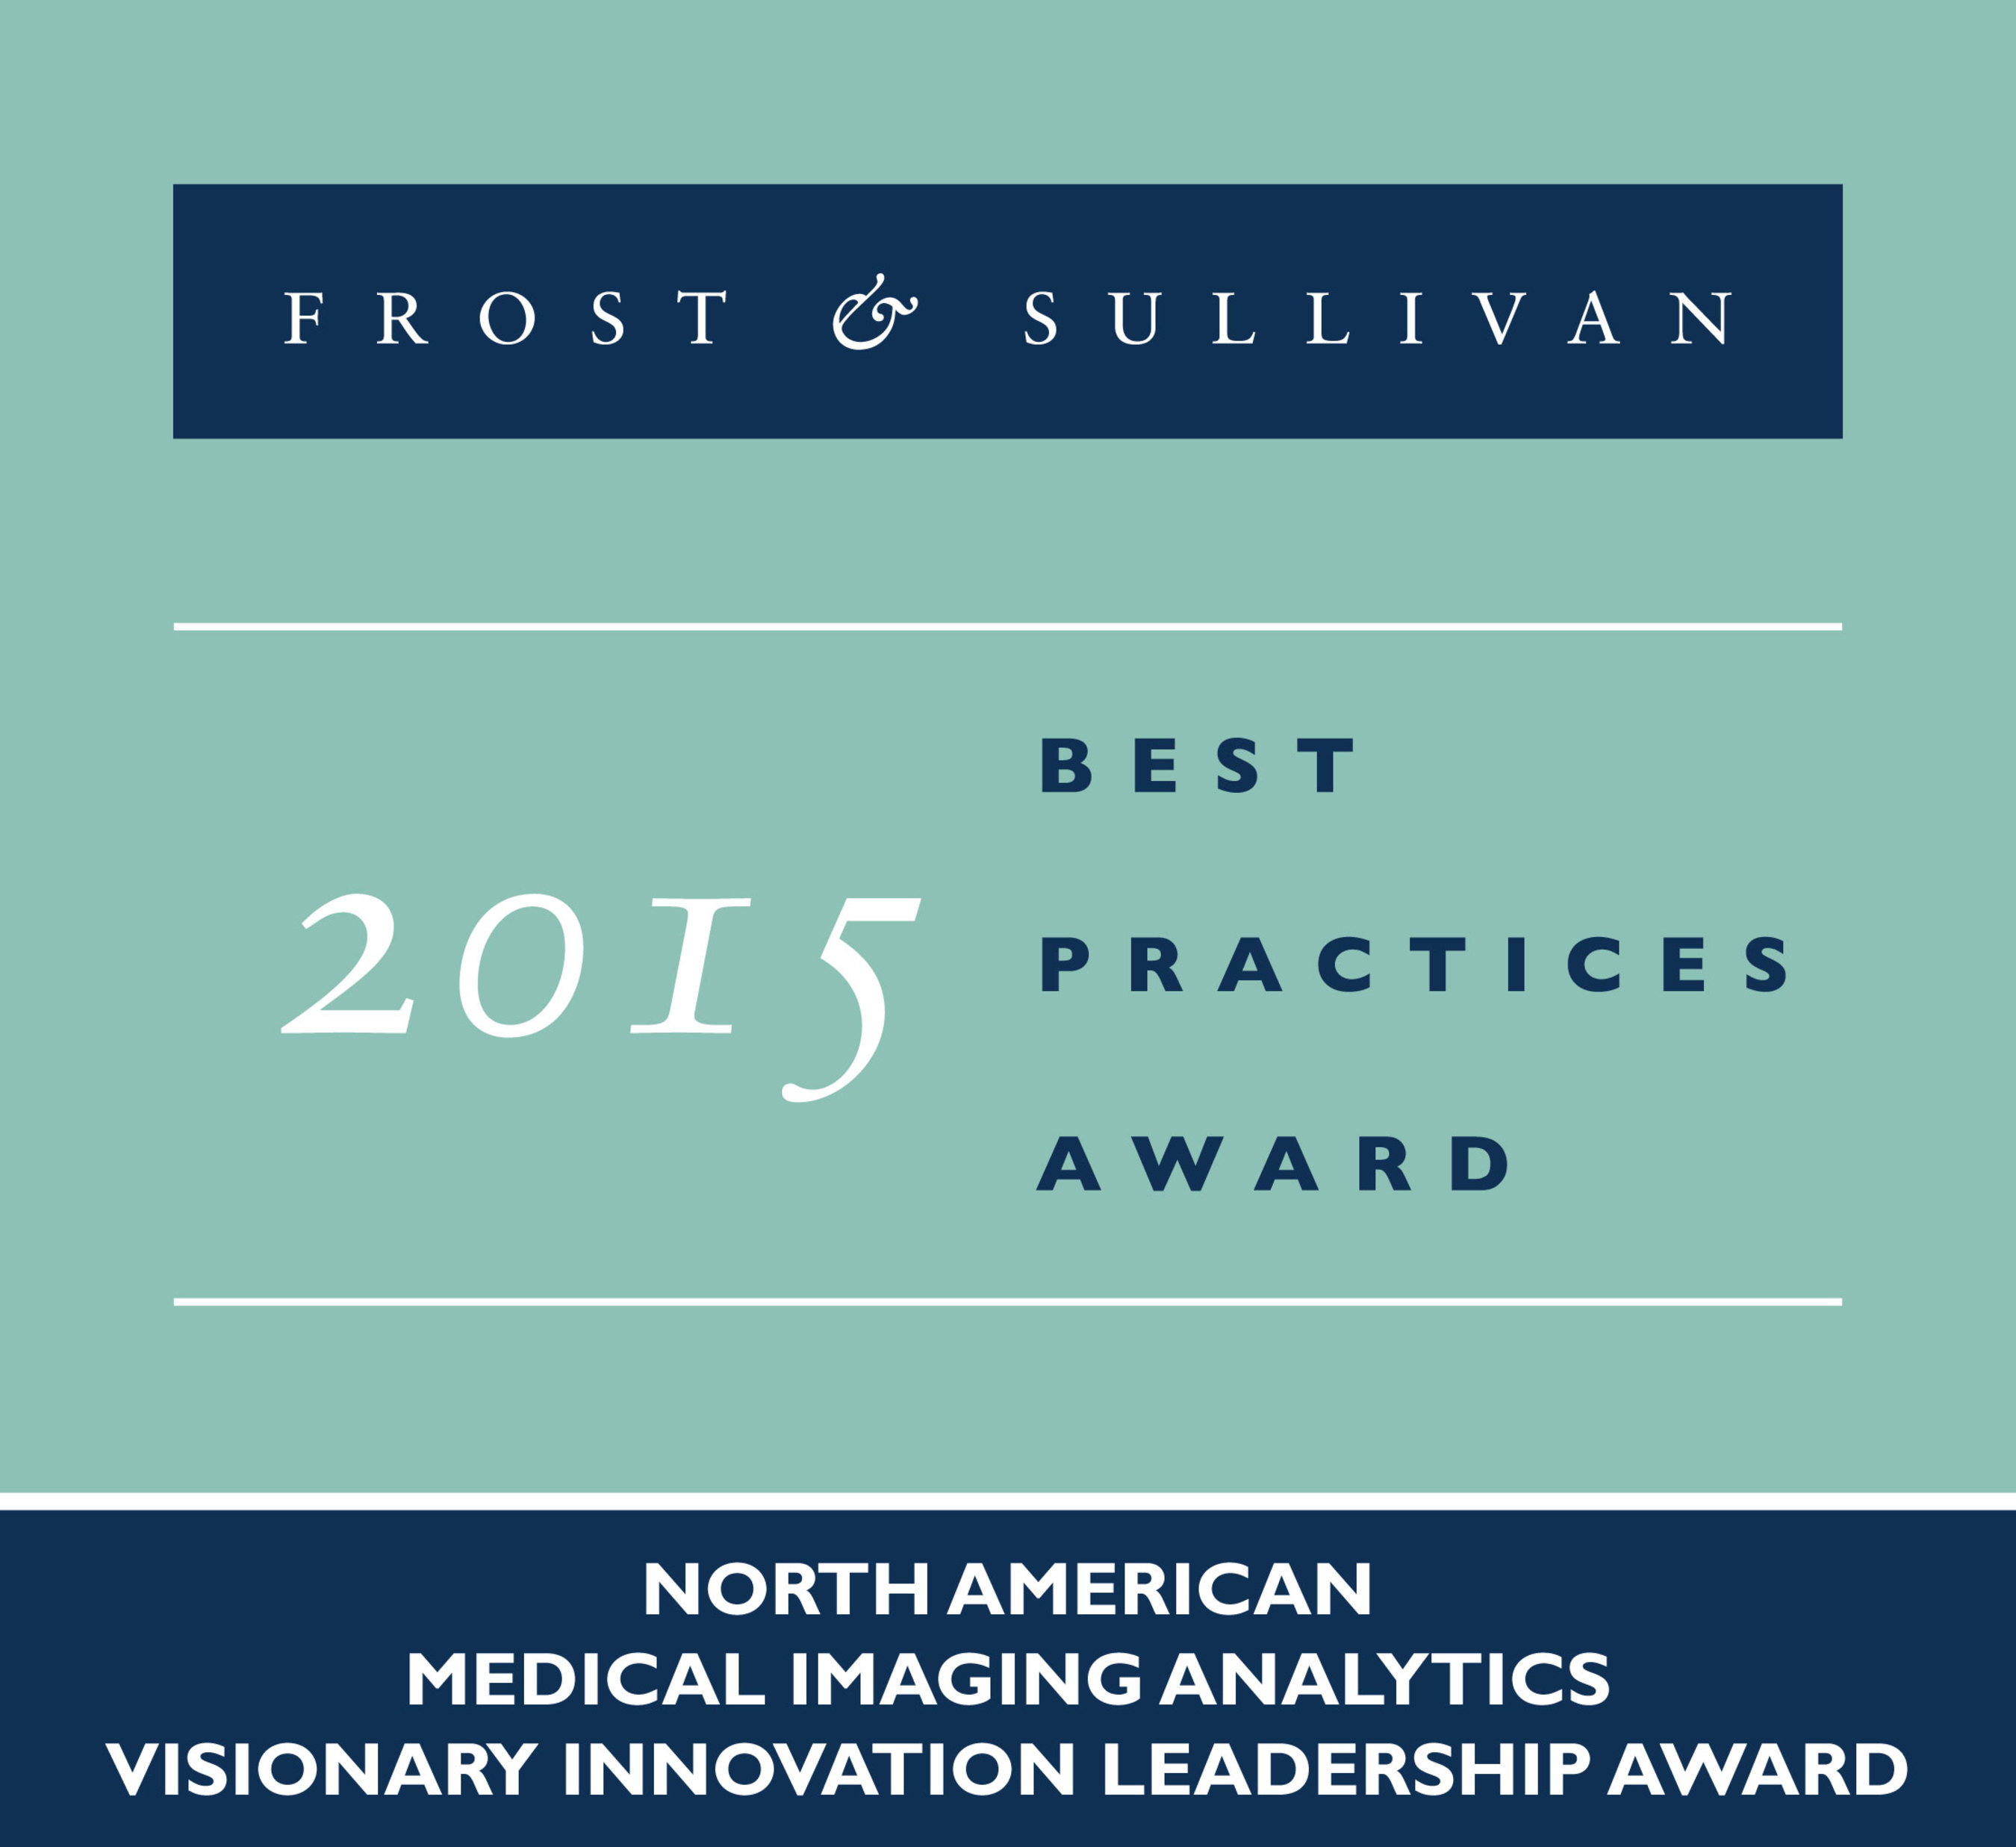 Frost & Sullivan Names Siemens Healthcare 2015 North American Medical Imaging Analytics Visionary